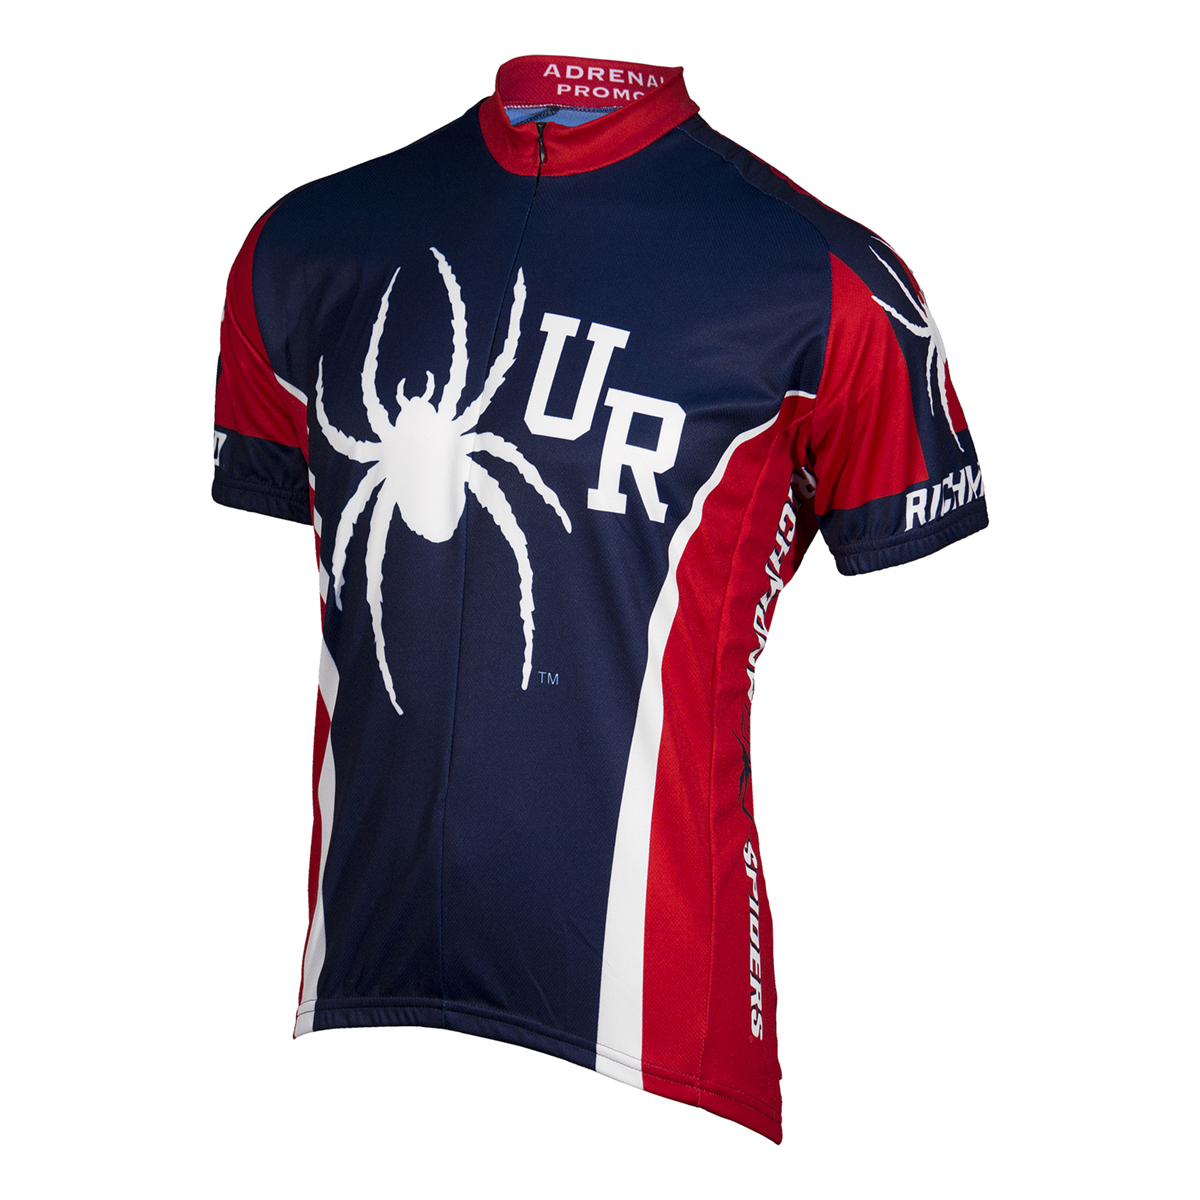 Adrenaline Promotions University of Richmond Spider Cycling Jersey